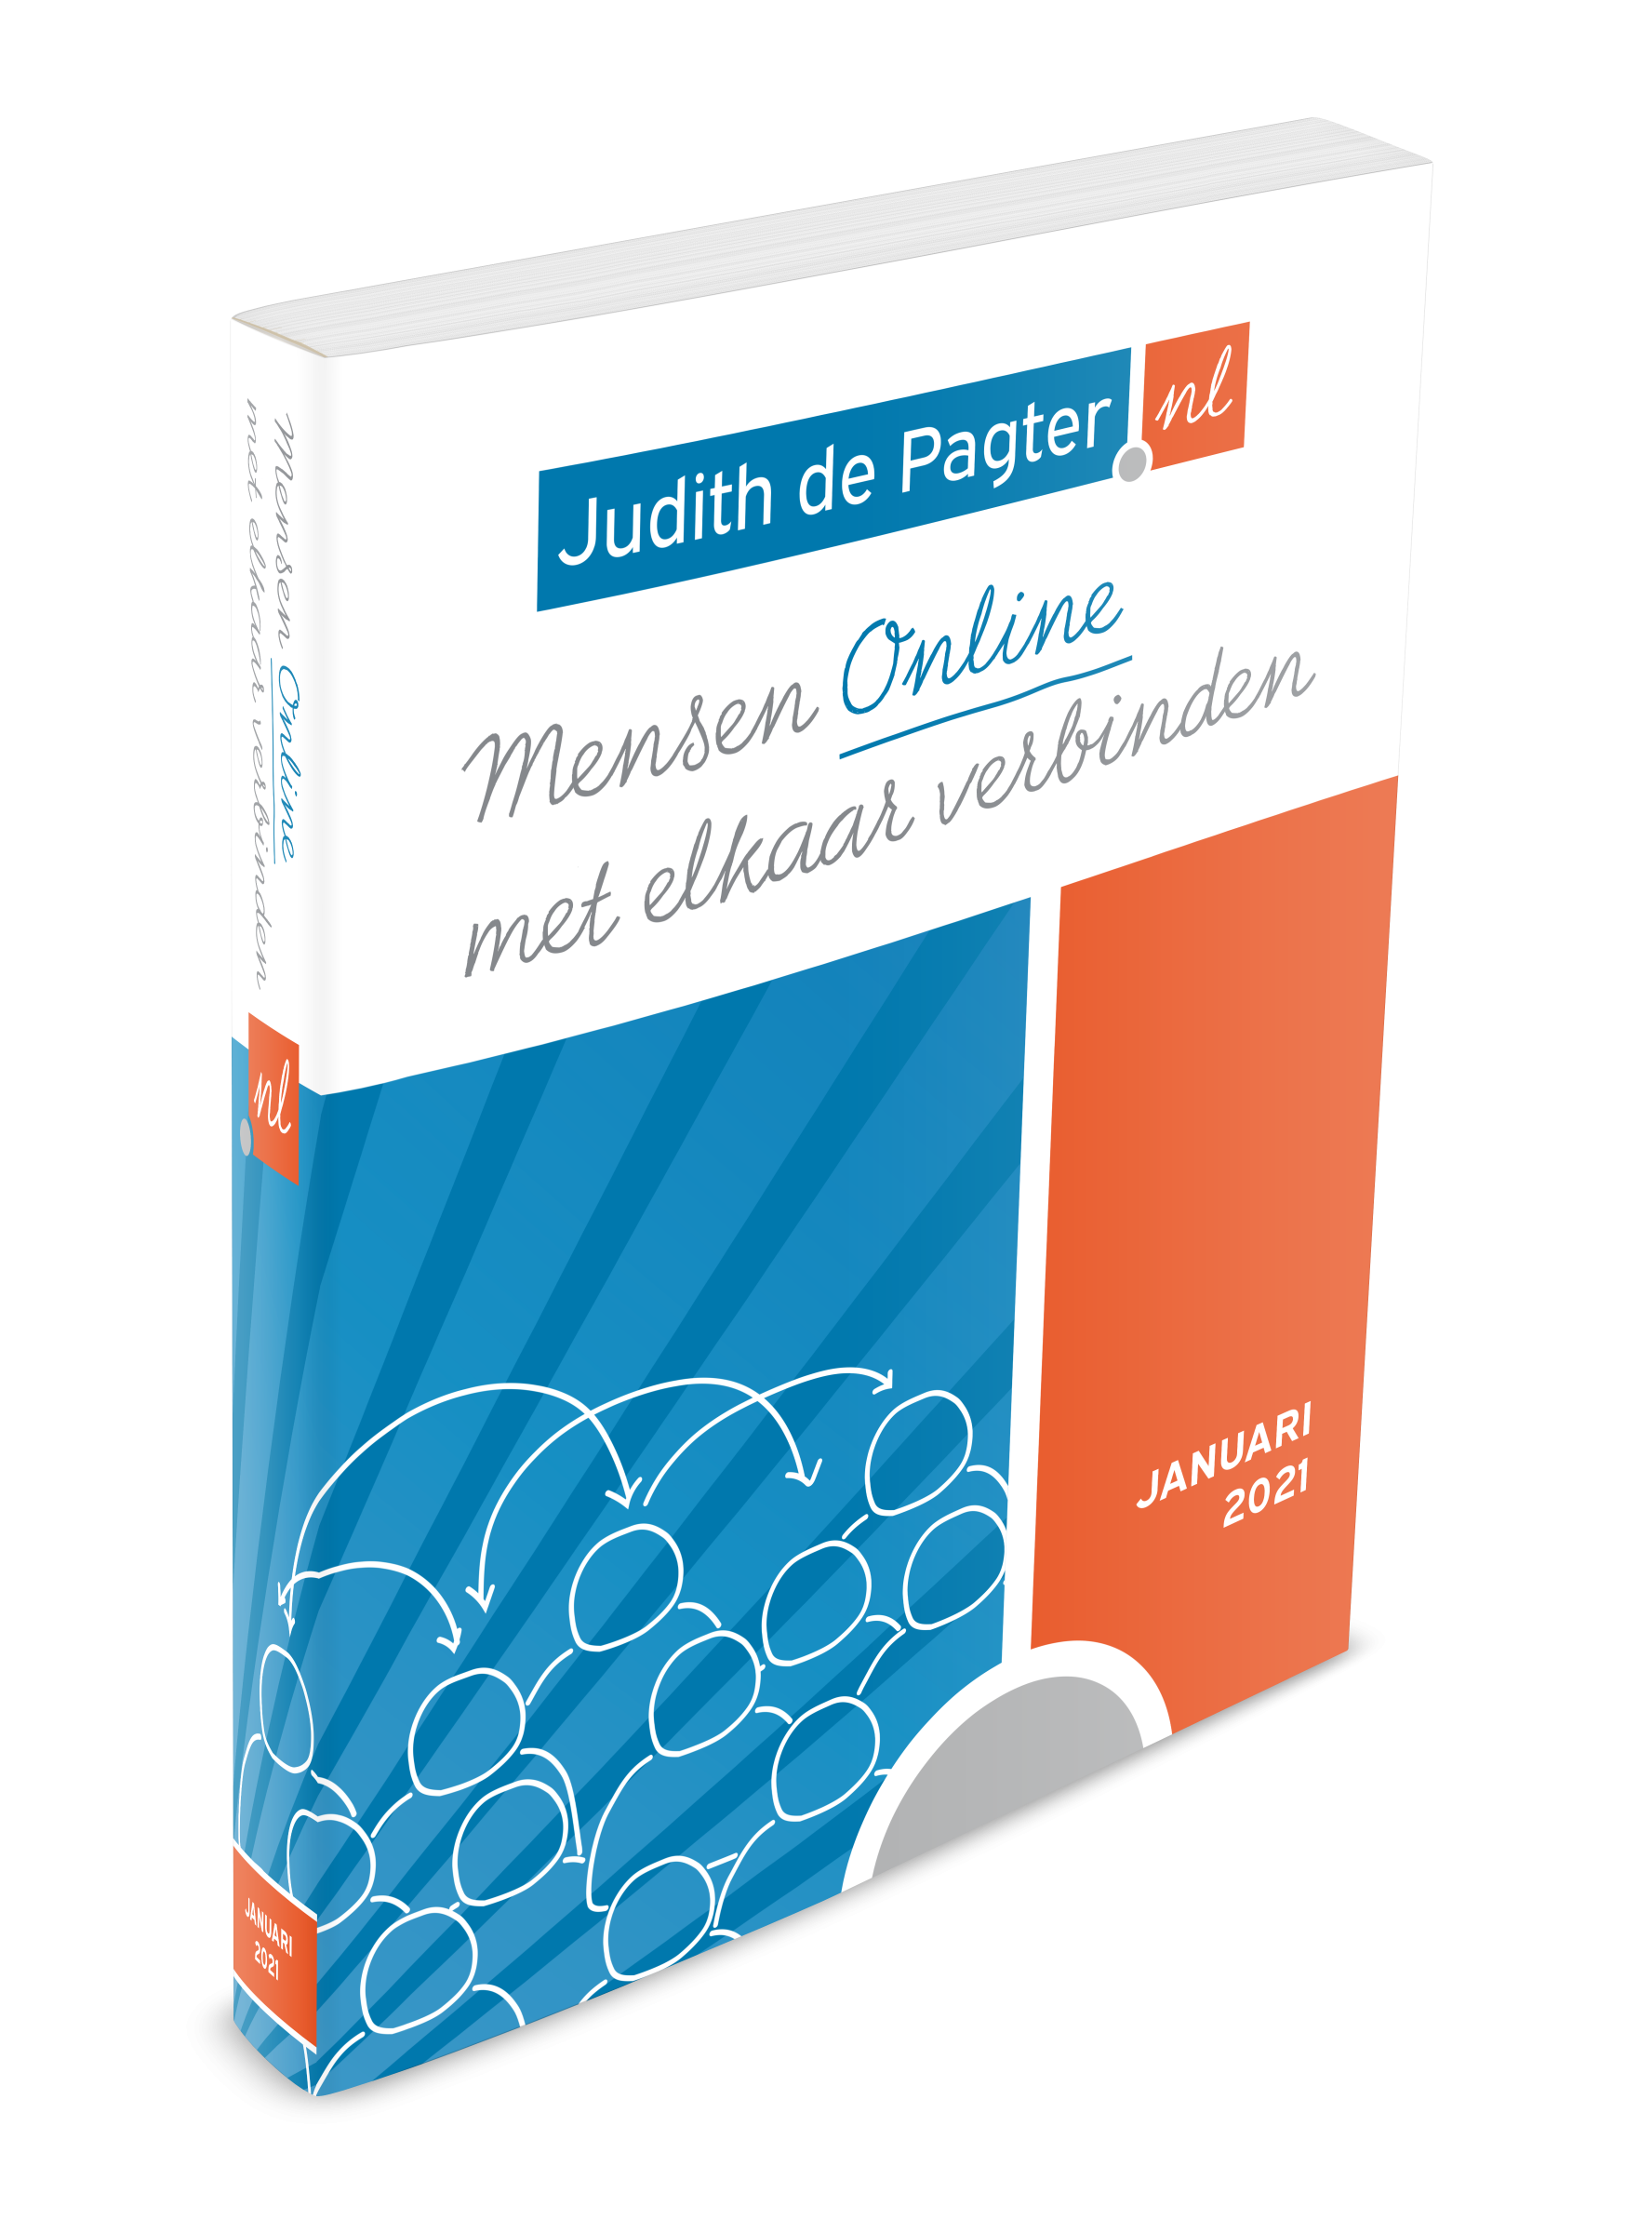 https://www.desocialmediatraining.nl/wp-content/uploads/Cover-e-book-2021-judithdepagter-2020-1.png